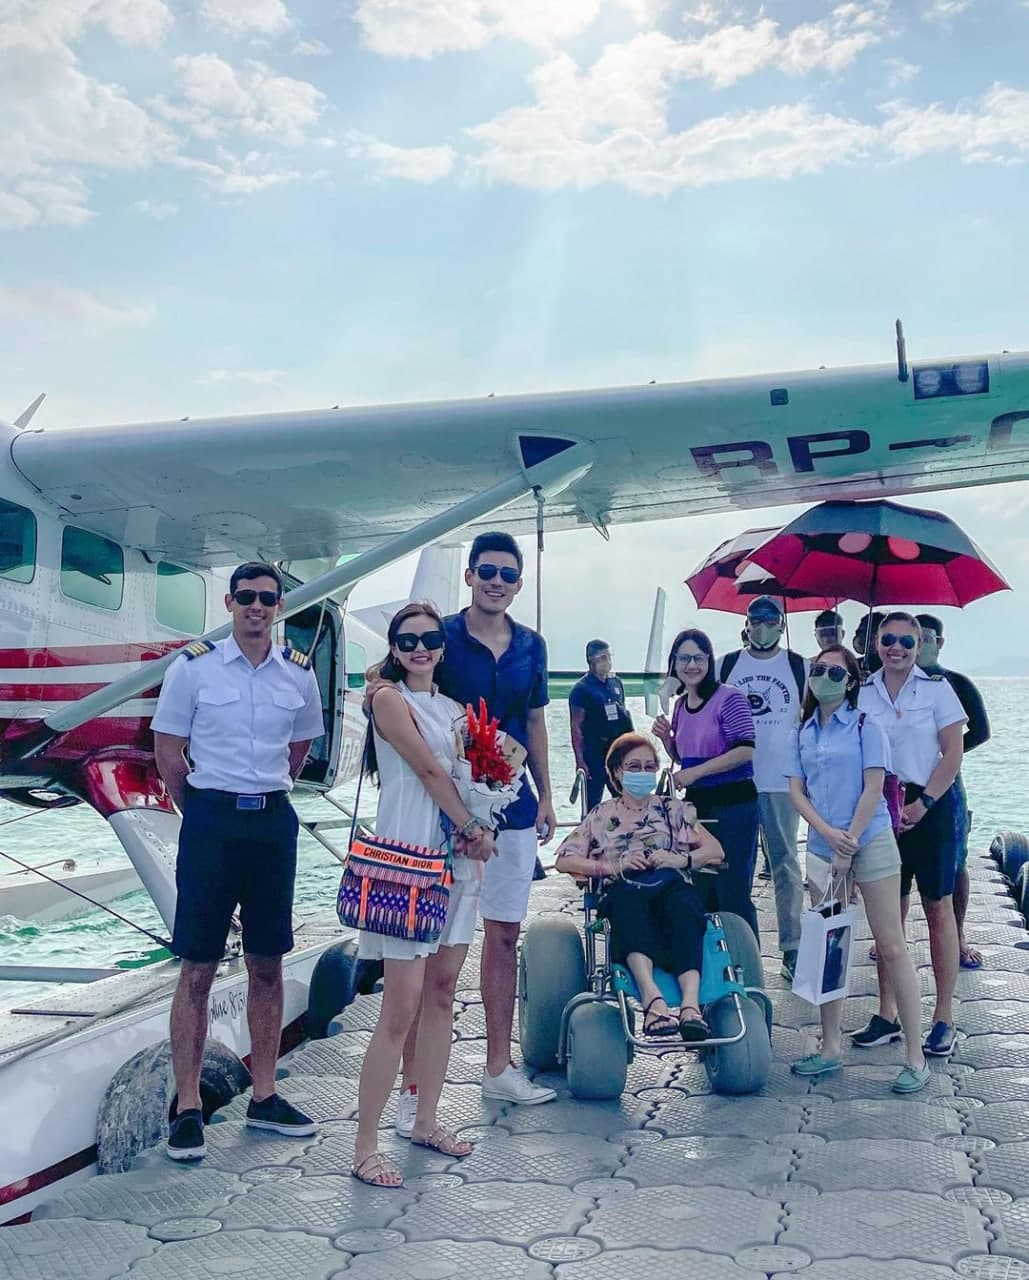 Kim Chiu and Xian Lim with their family on a trip